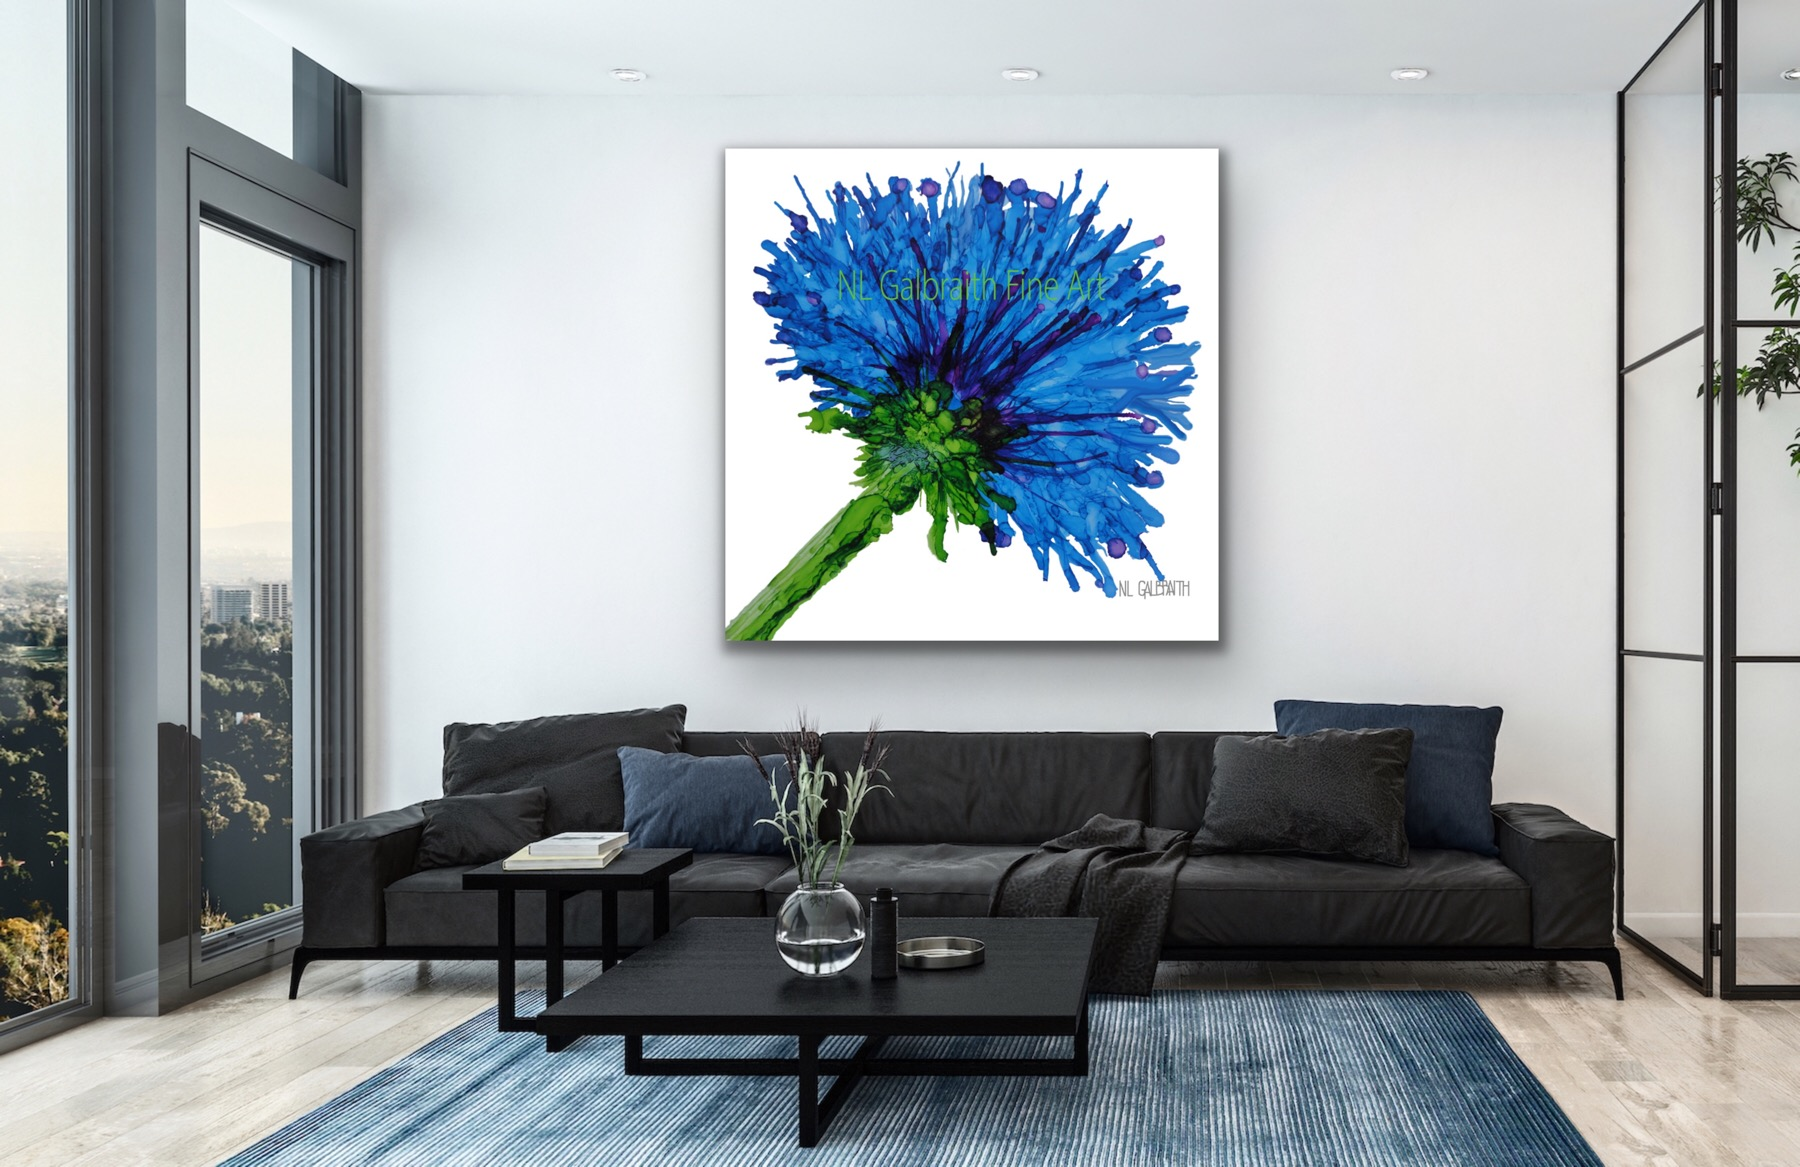 Oversized Blue Flower Graphic Over a Black Sofa in a High Rise Loft Flat Apartment